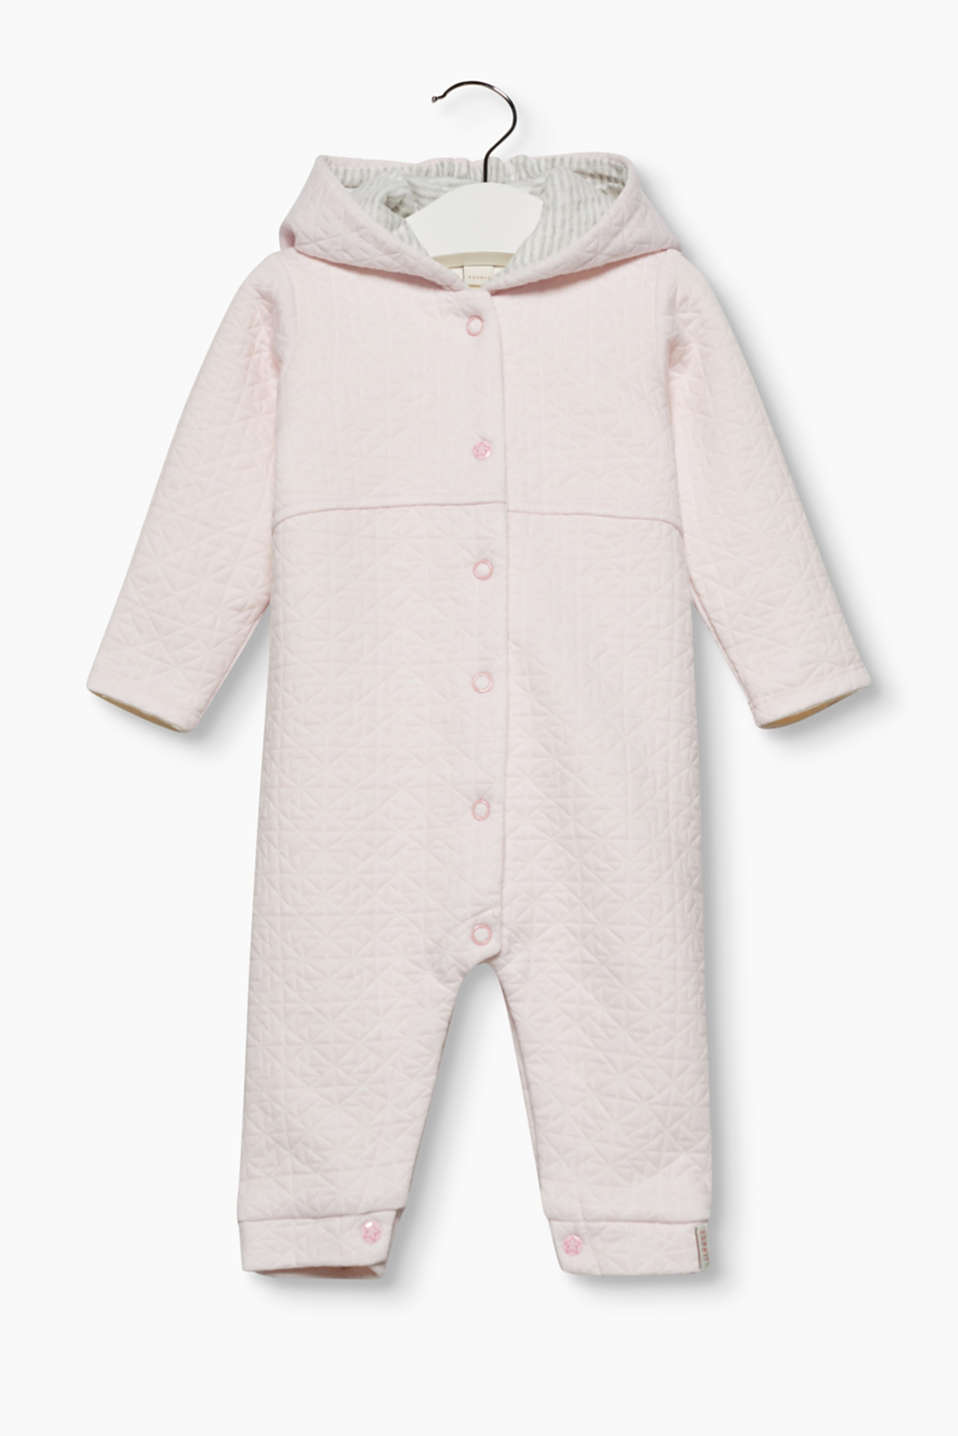 Esprit - Sweatshirt romper + decorative topstitching